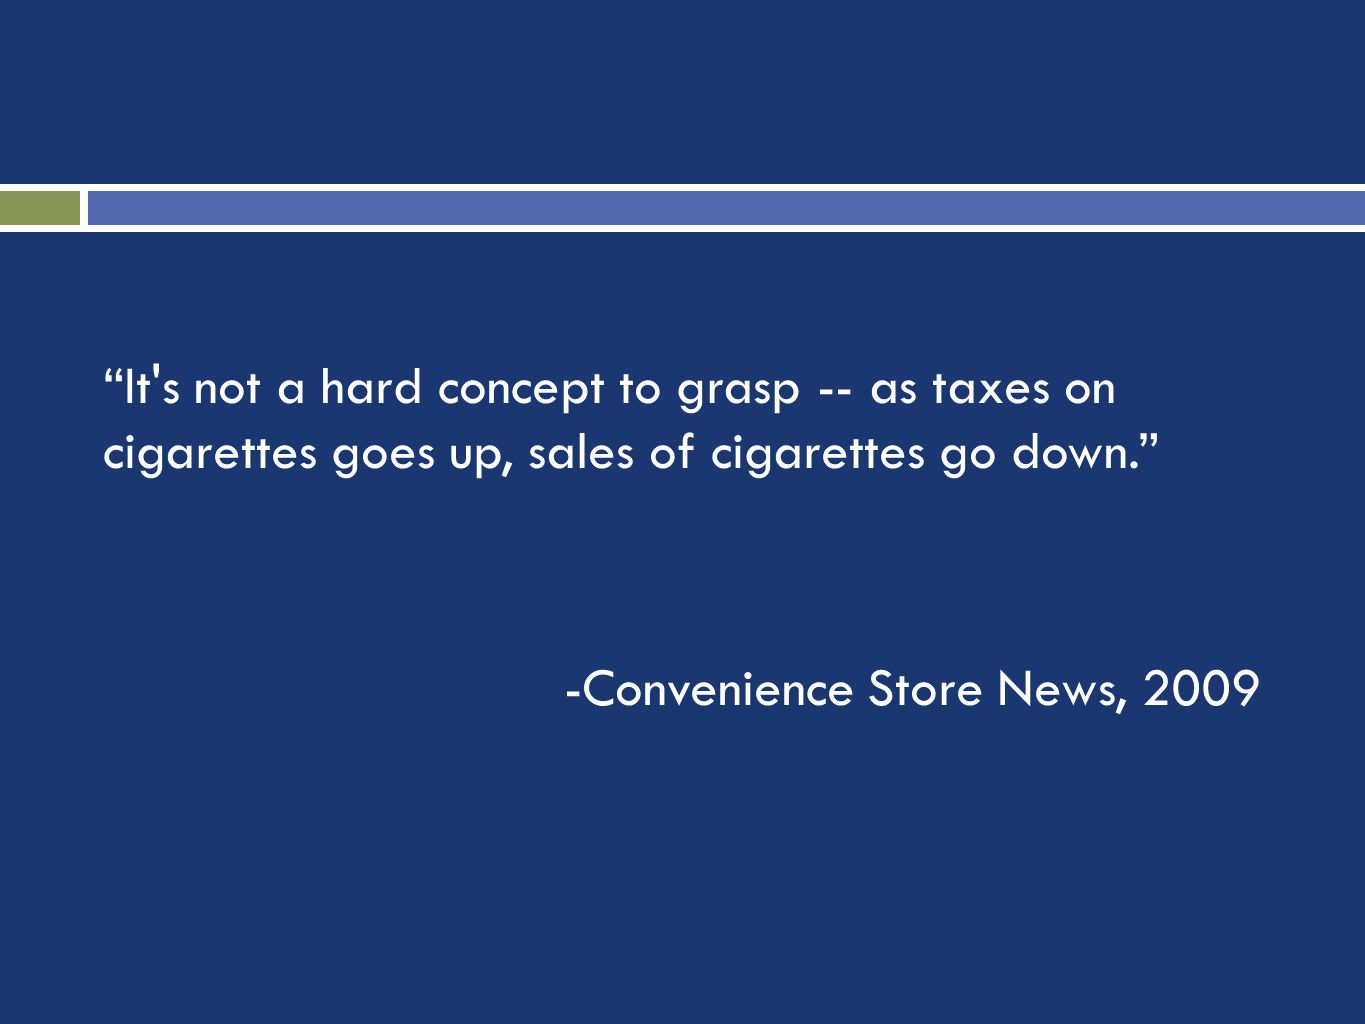 It s not a hard concept to grasp -- as taxes on cigarettes goes up, sales of cigarettes go down.